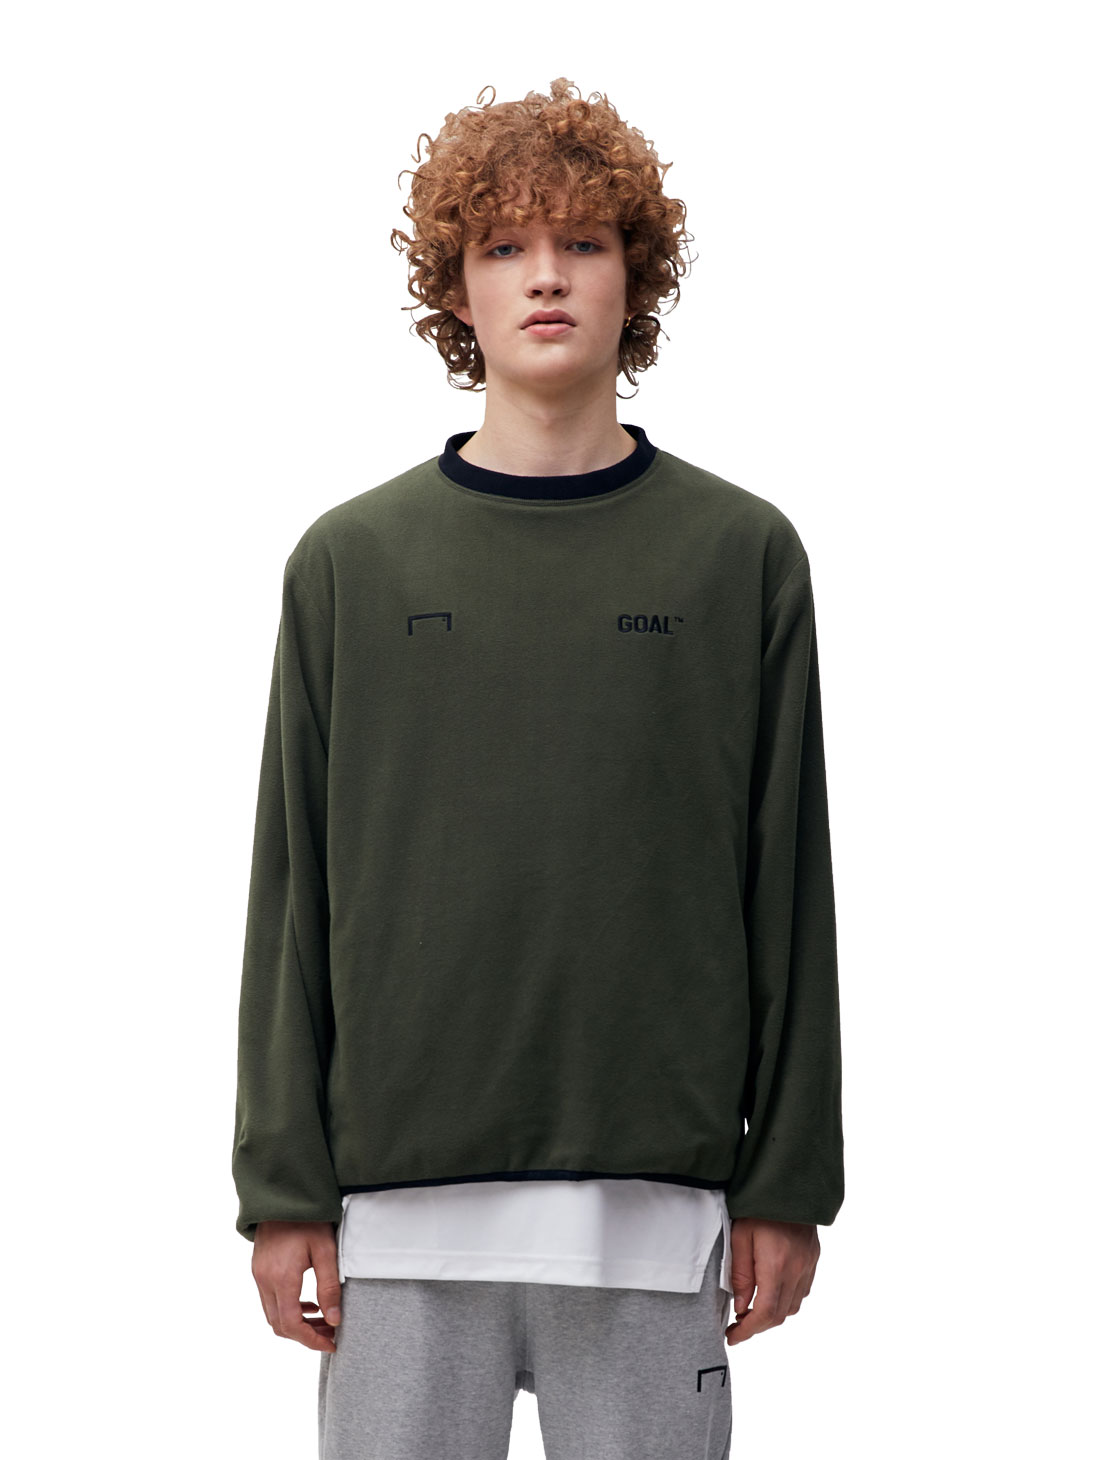 GOALSTUDIO (Sold Out) REVERSIBLE PULLOVER - KHAKI/BLACK